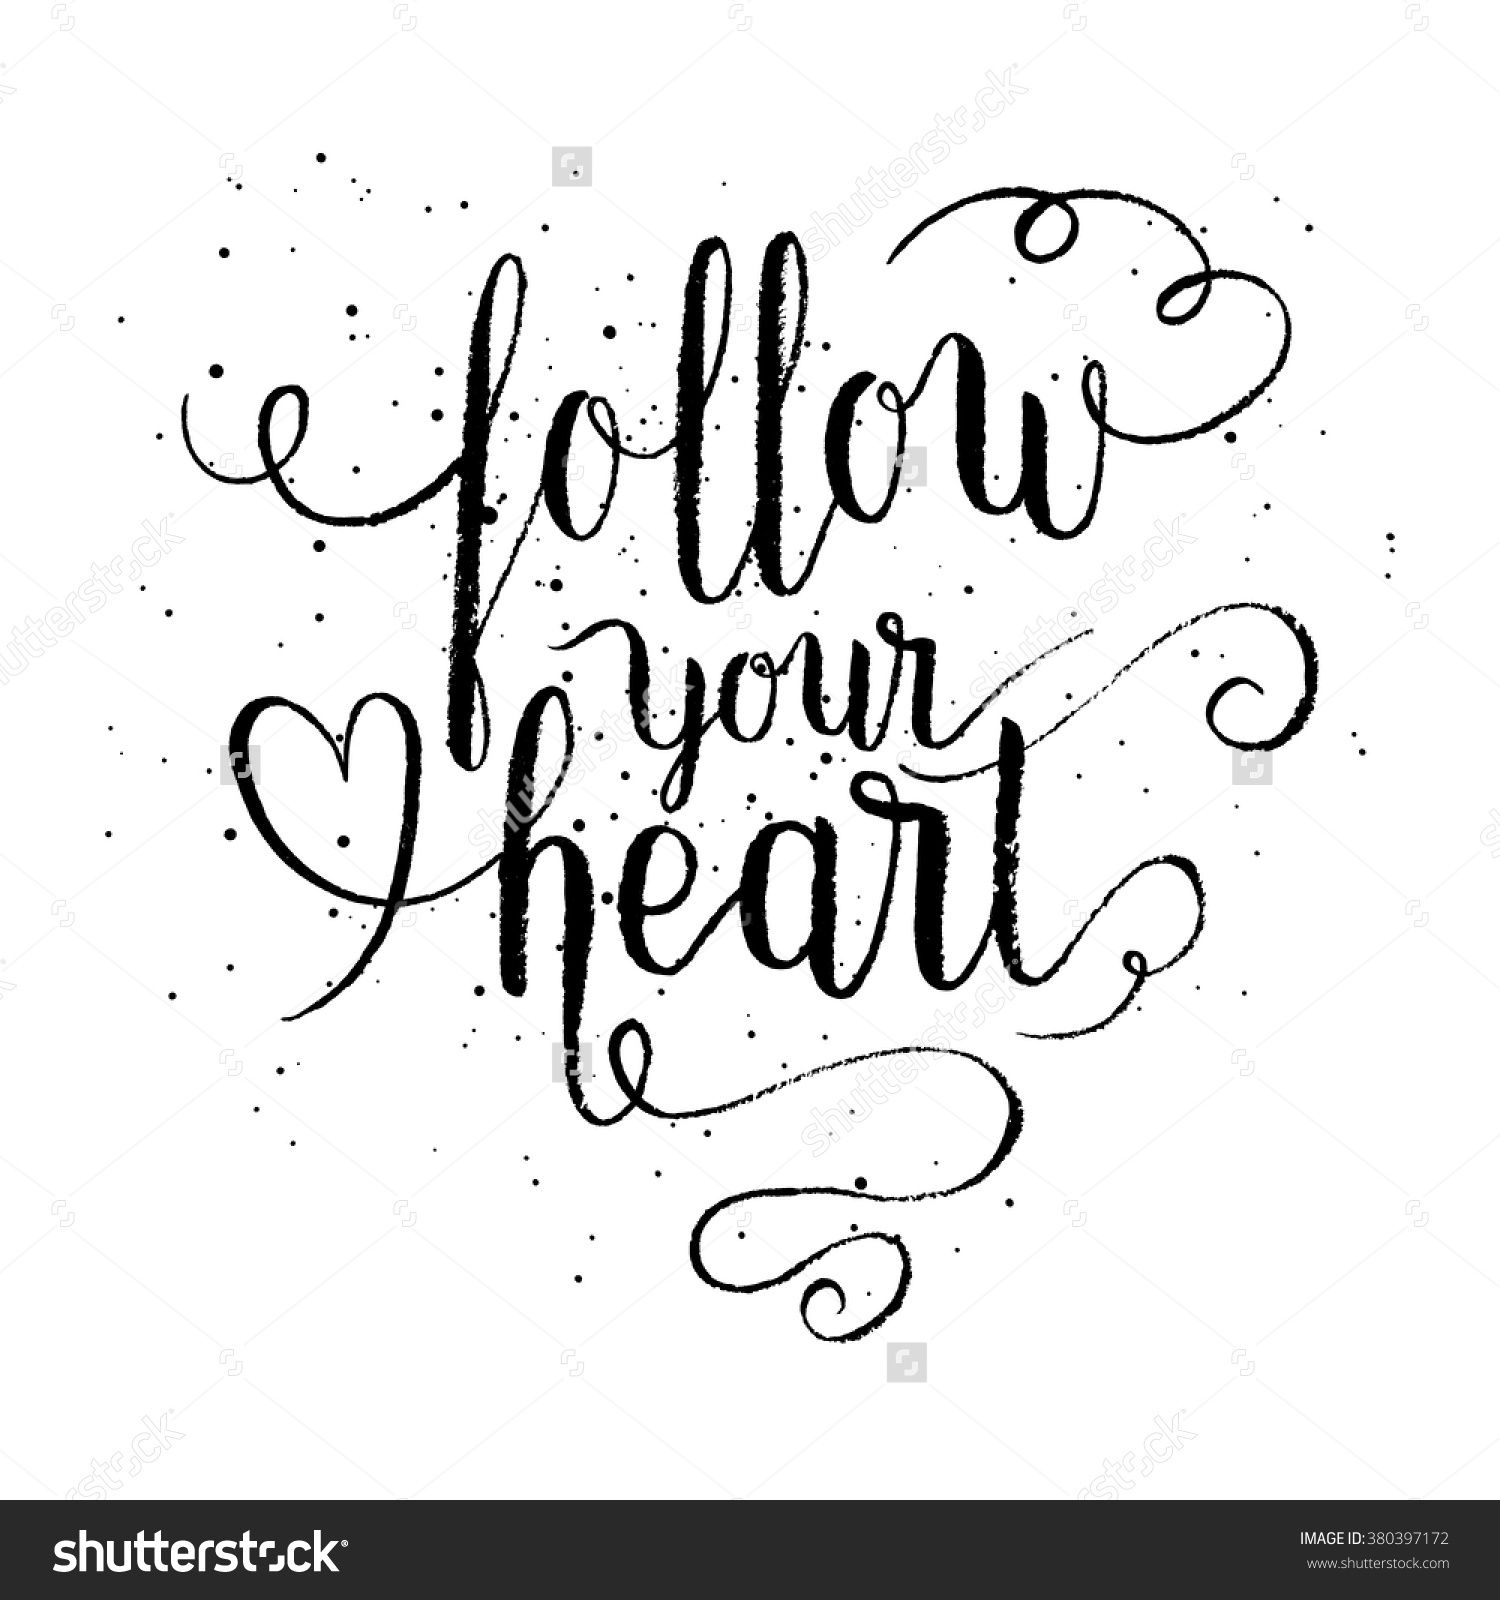 Follow Your Heart Greeting Card Poster Print Vector